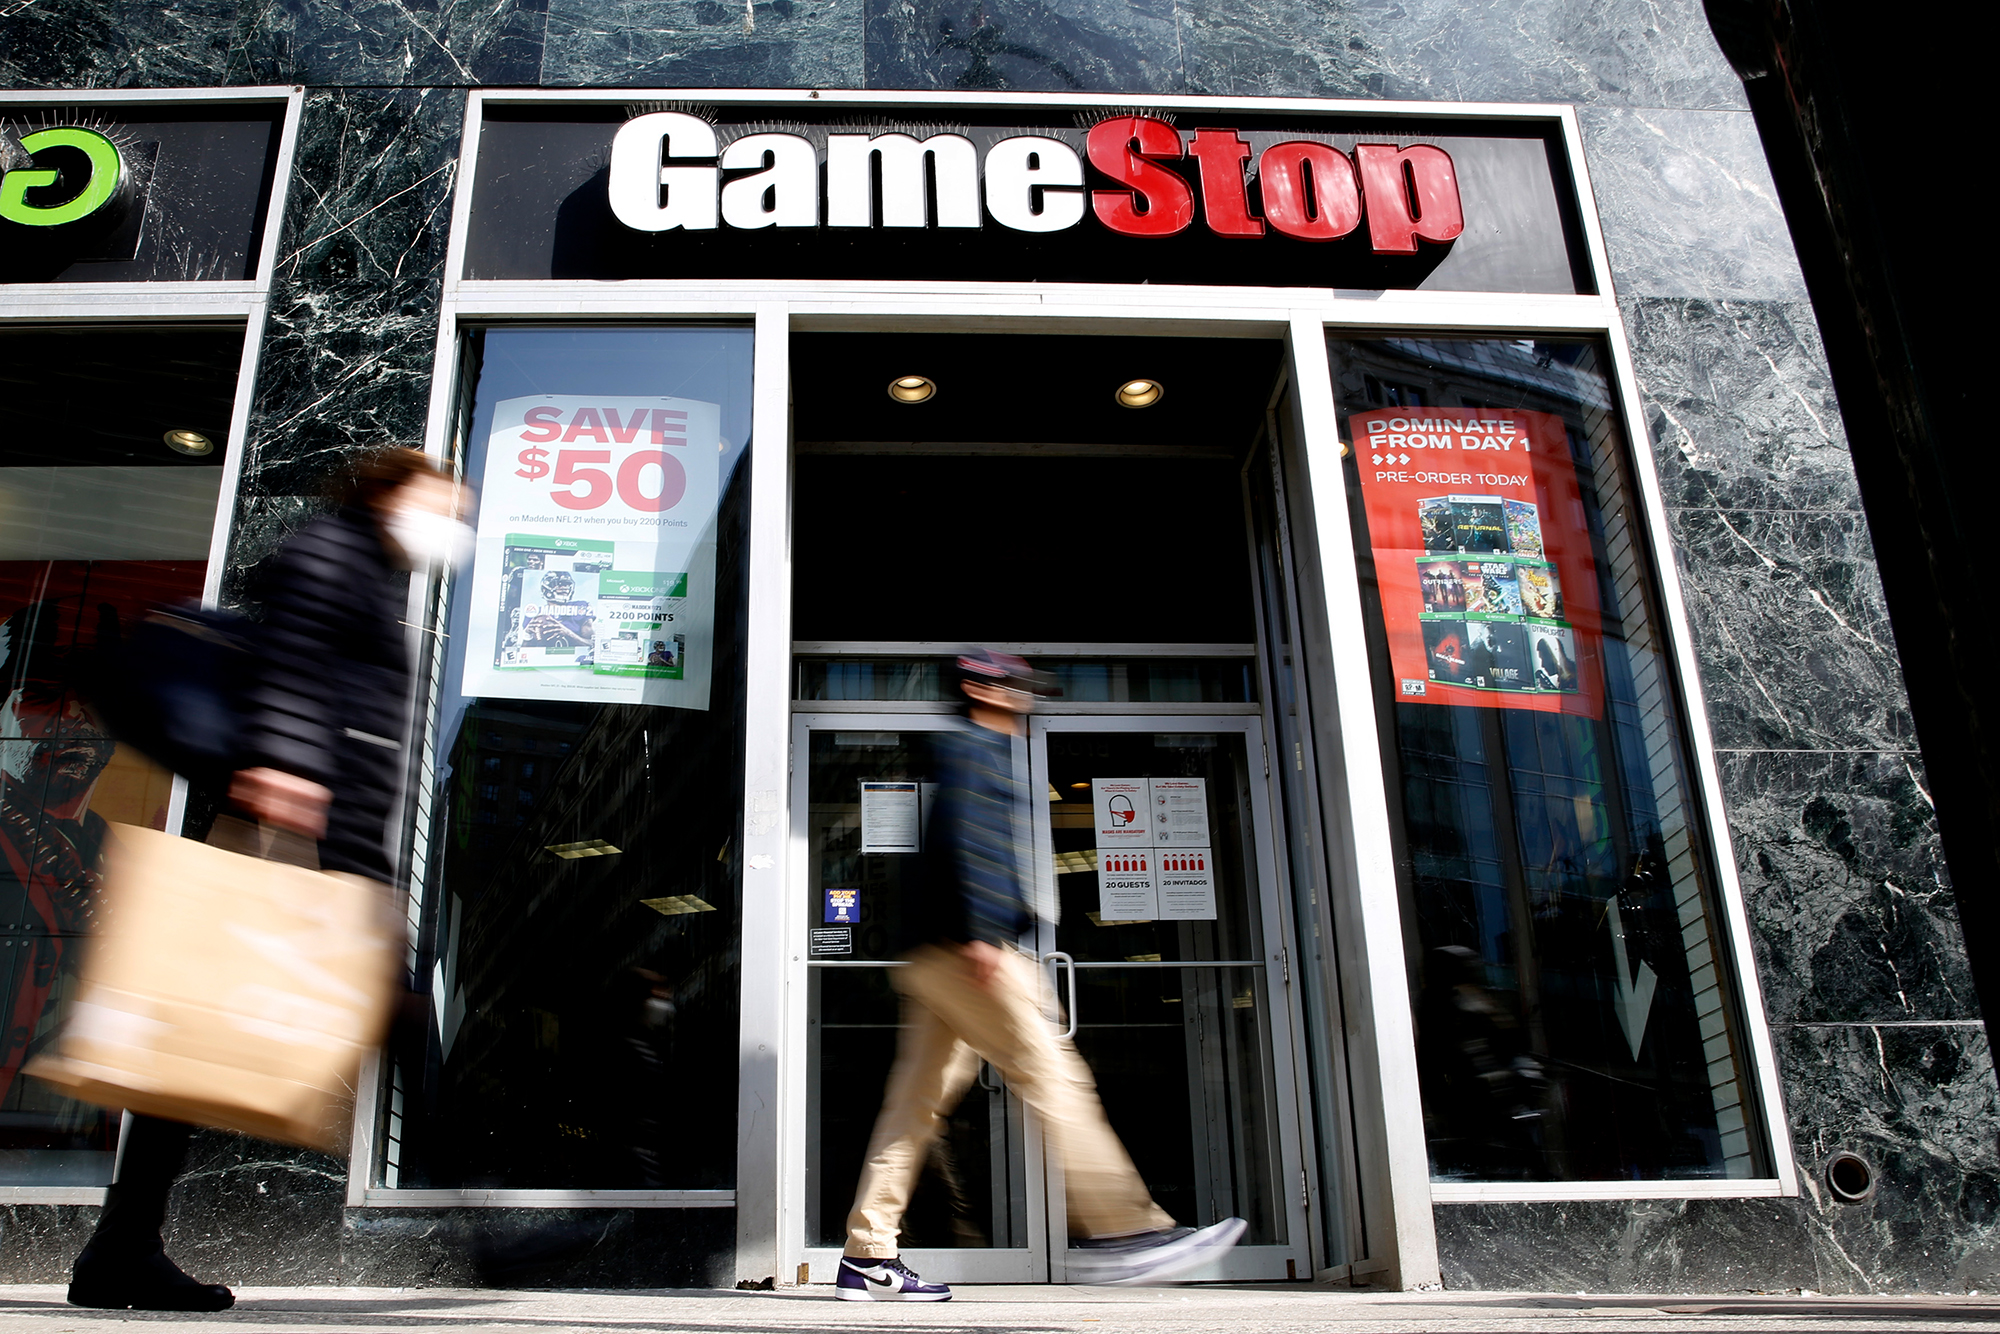 The guy who started the GameStop mania will soon be chairman of the board